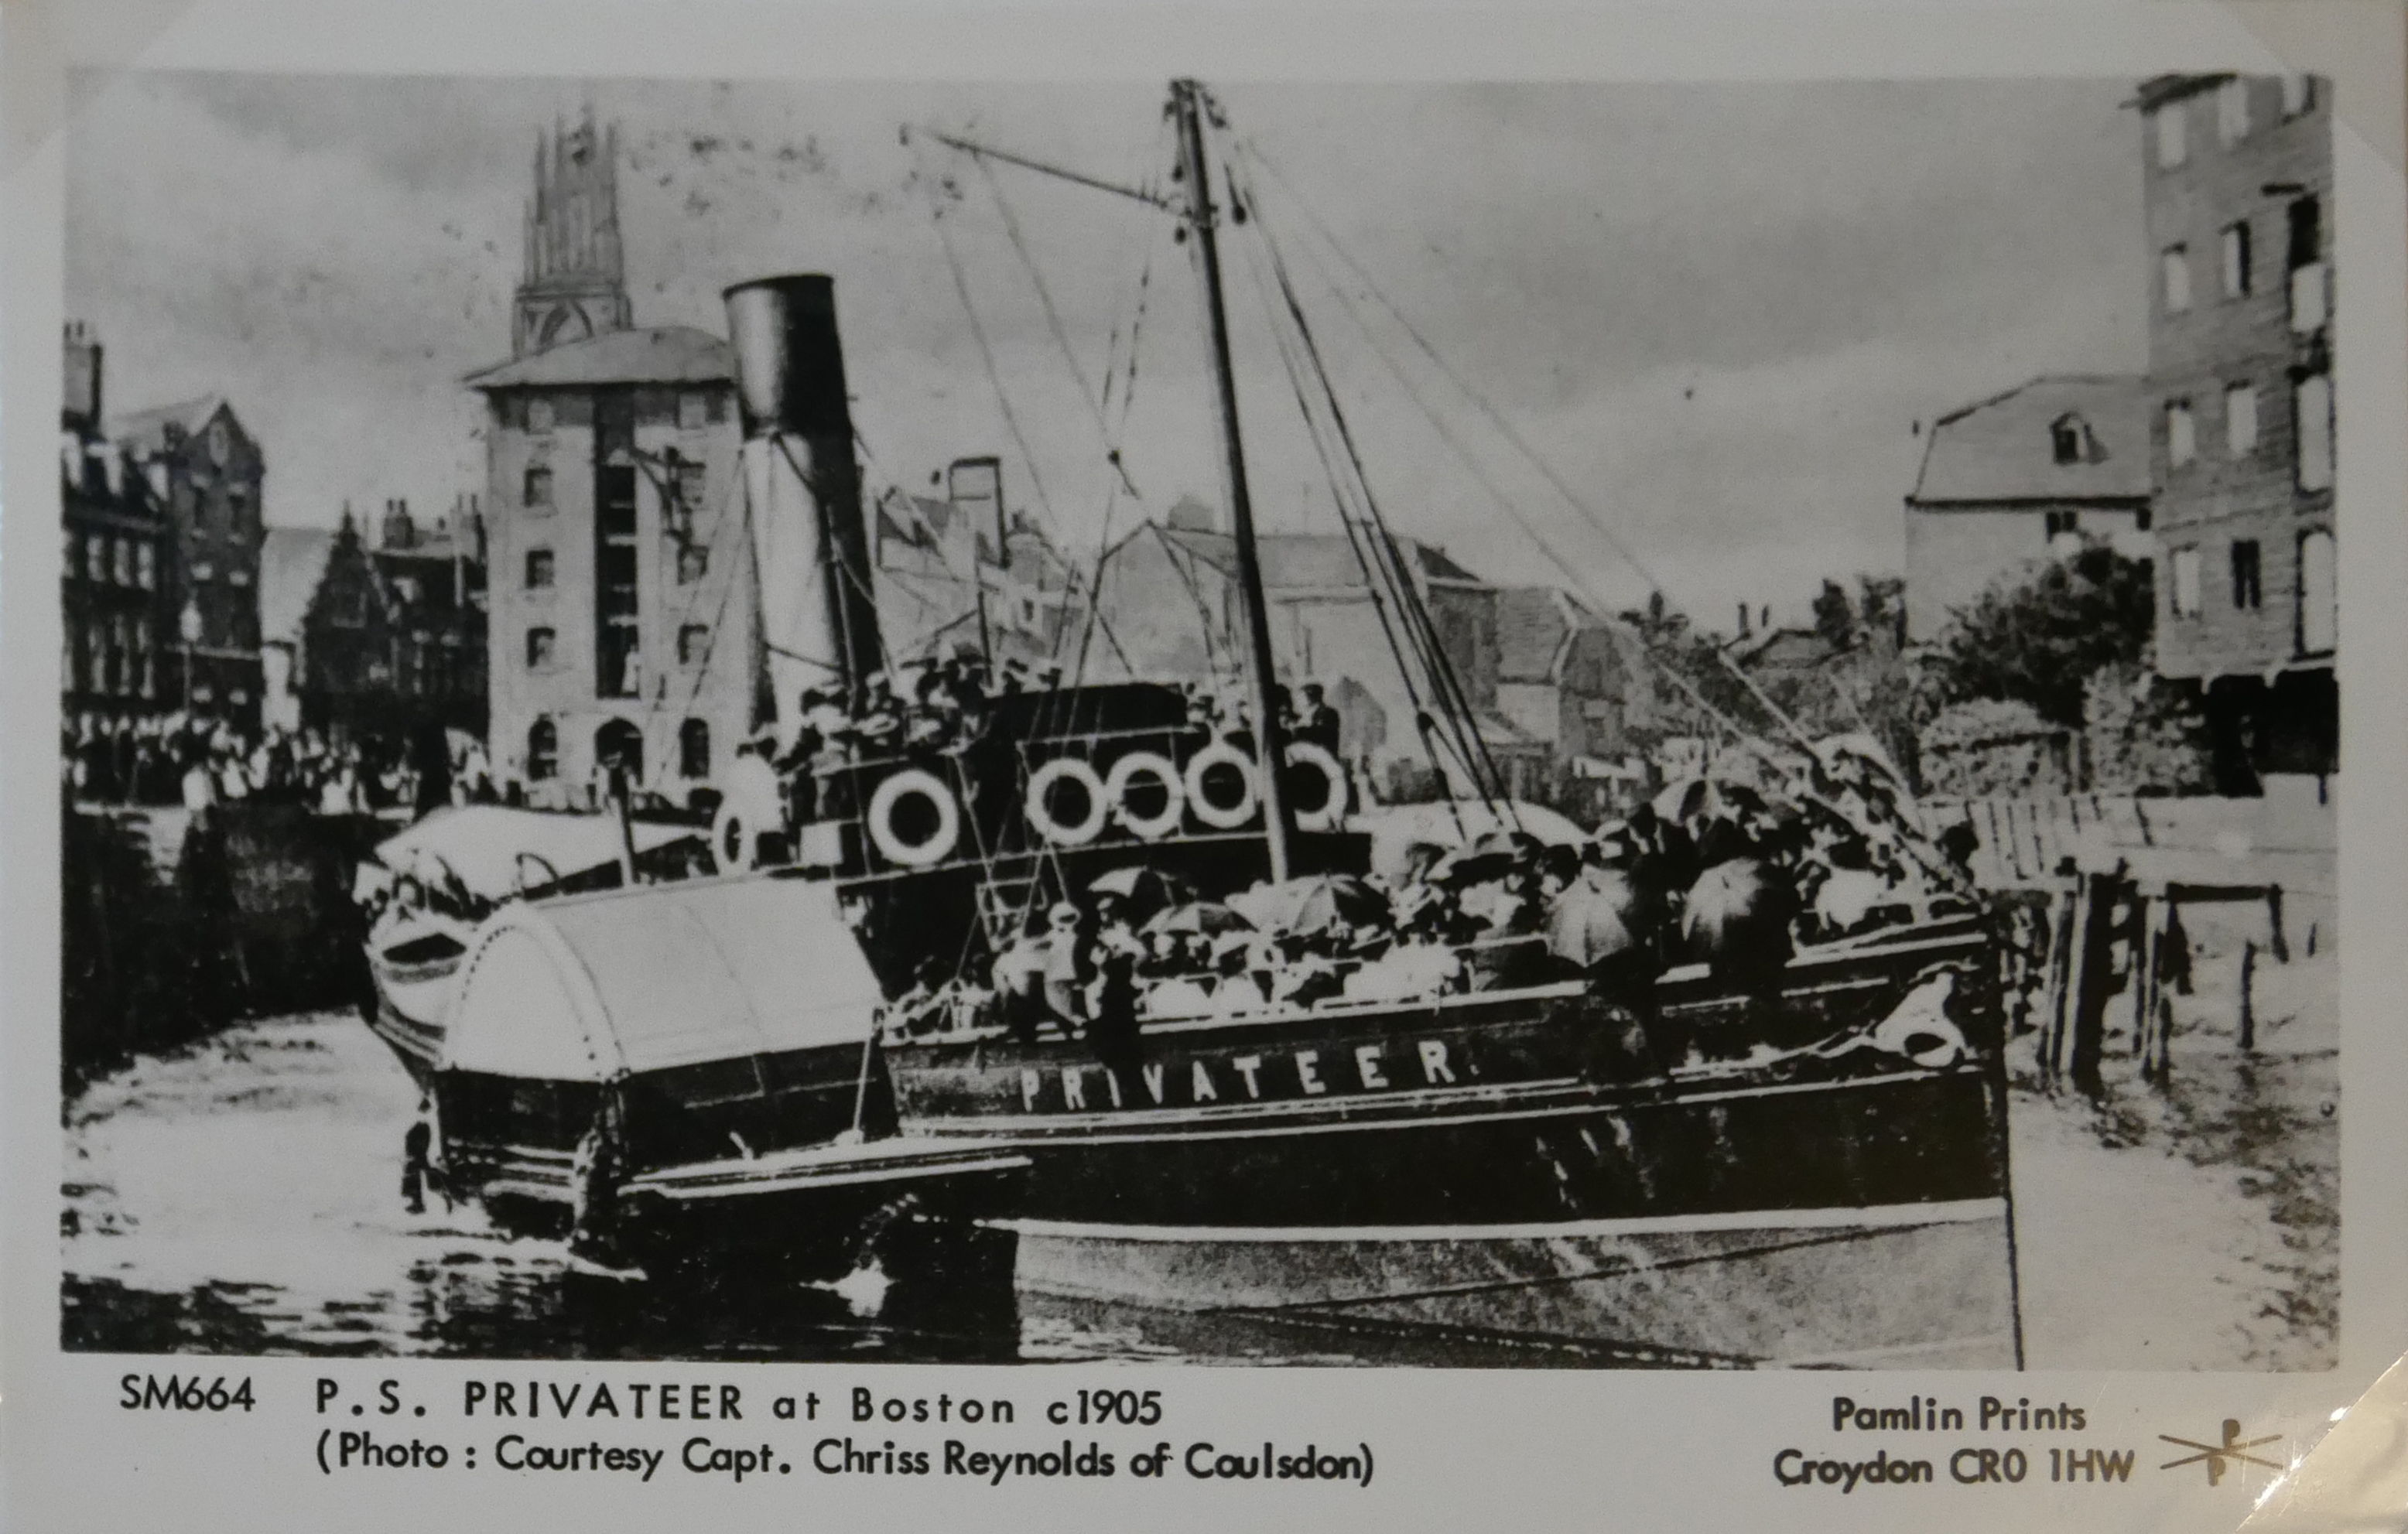 AN ALBUM OF BLACK AND WHITE PHOTOGRAPHIC POSTCARDS OF STEAM SHIPS Issued by Pamlin Prints, including - Image 10 of 10